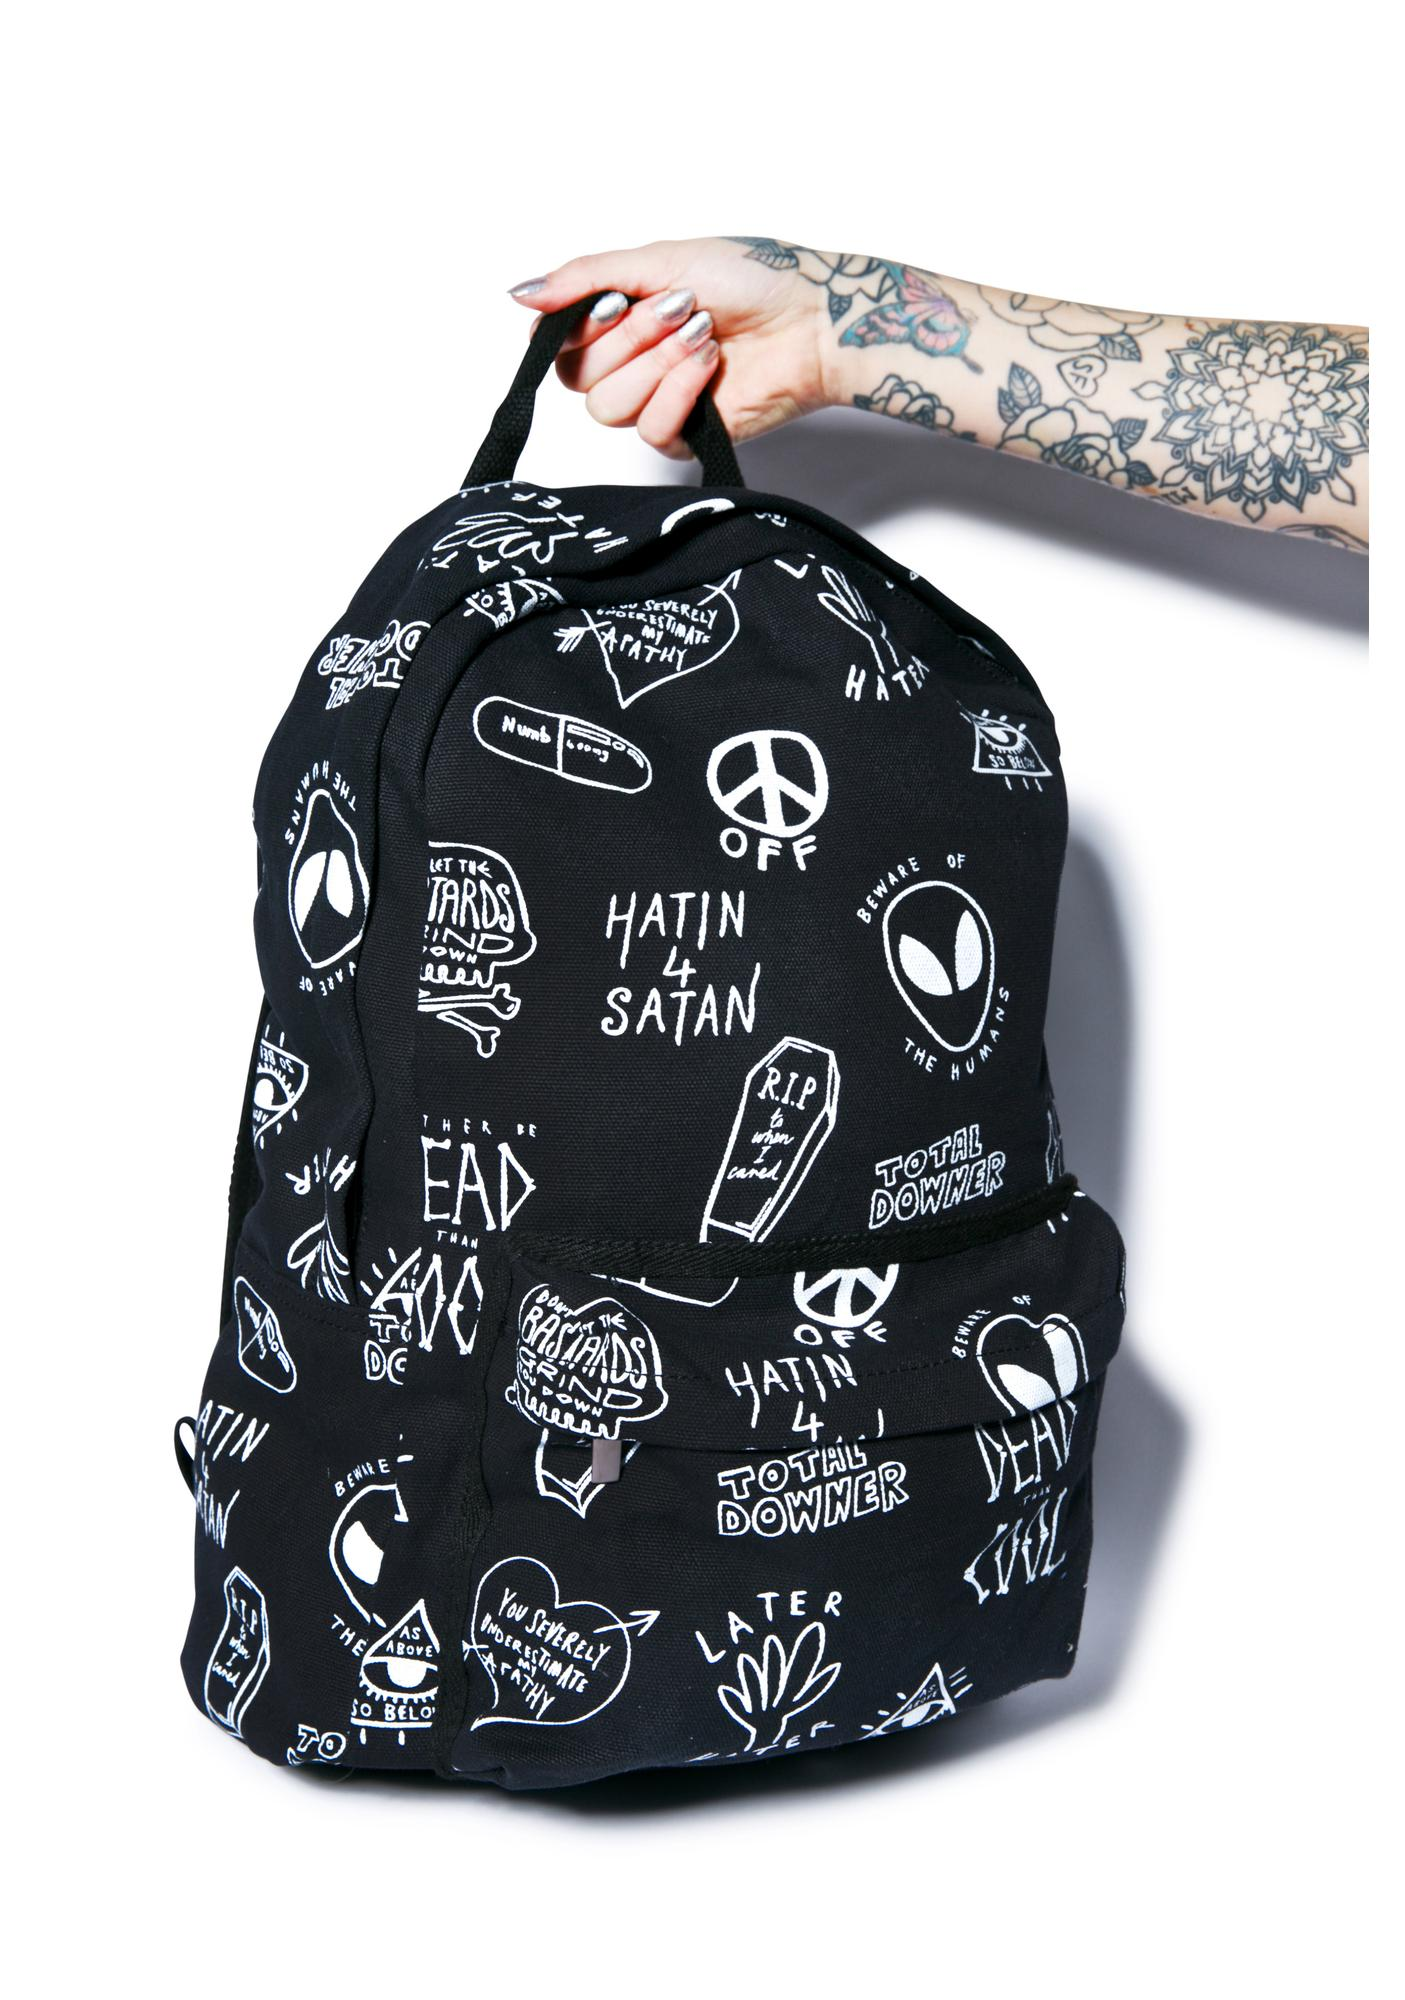 Disturbia Downer Backpack